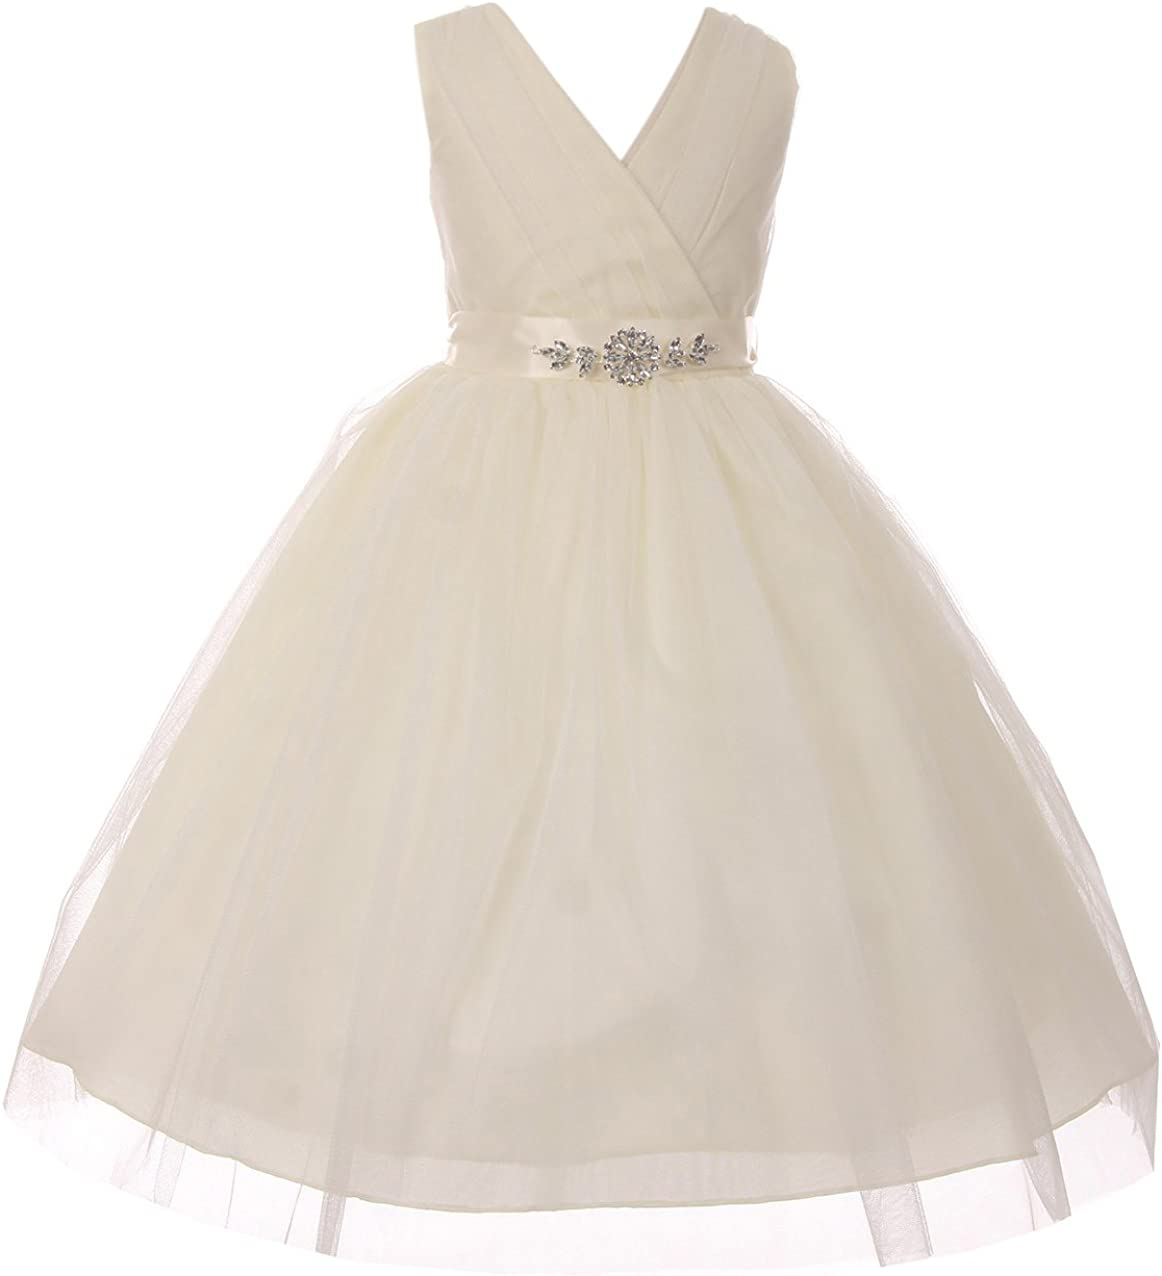 Max 49% OFF Little Girls V Neck Shiny Rhinestone Pageant ! Super beauty product restock quality top! Dazzling Tulle Flow